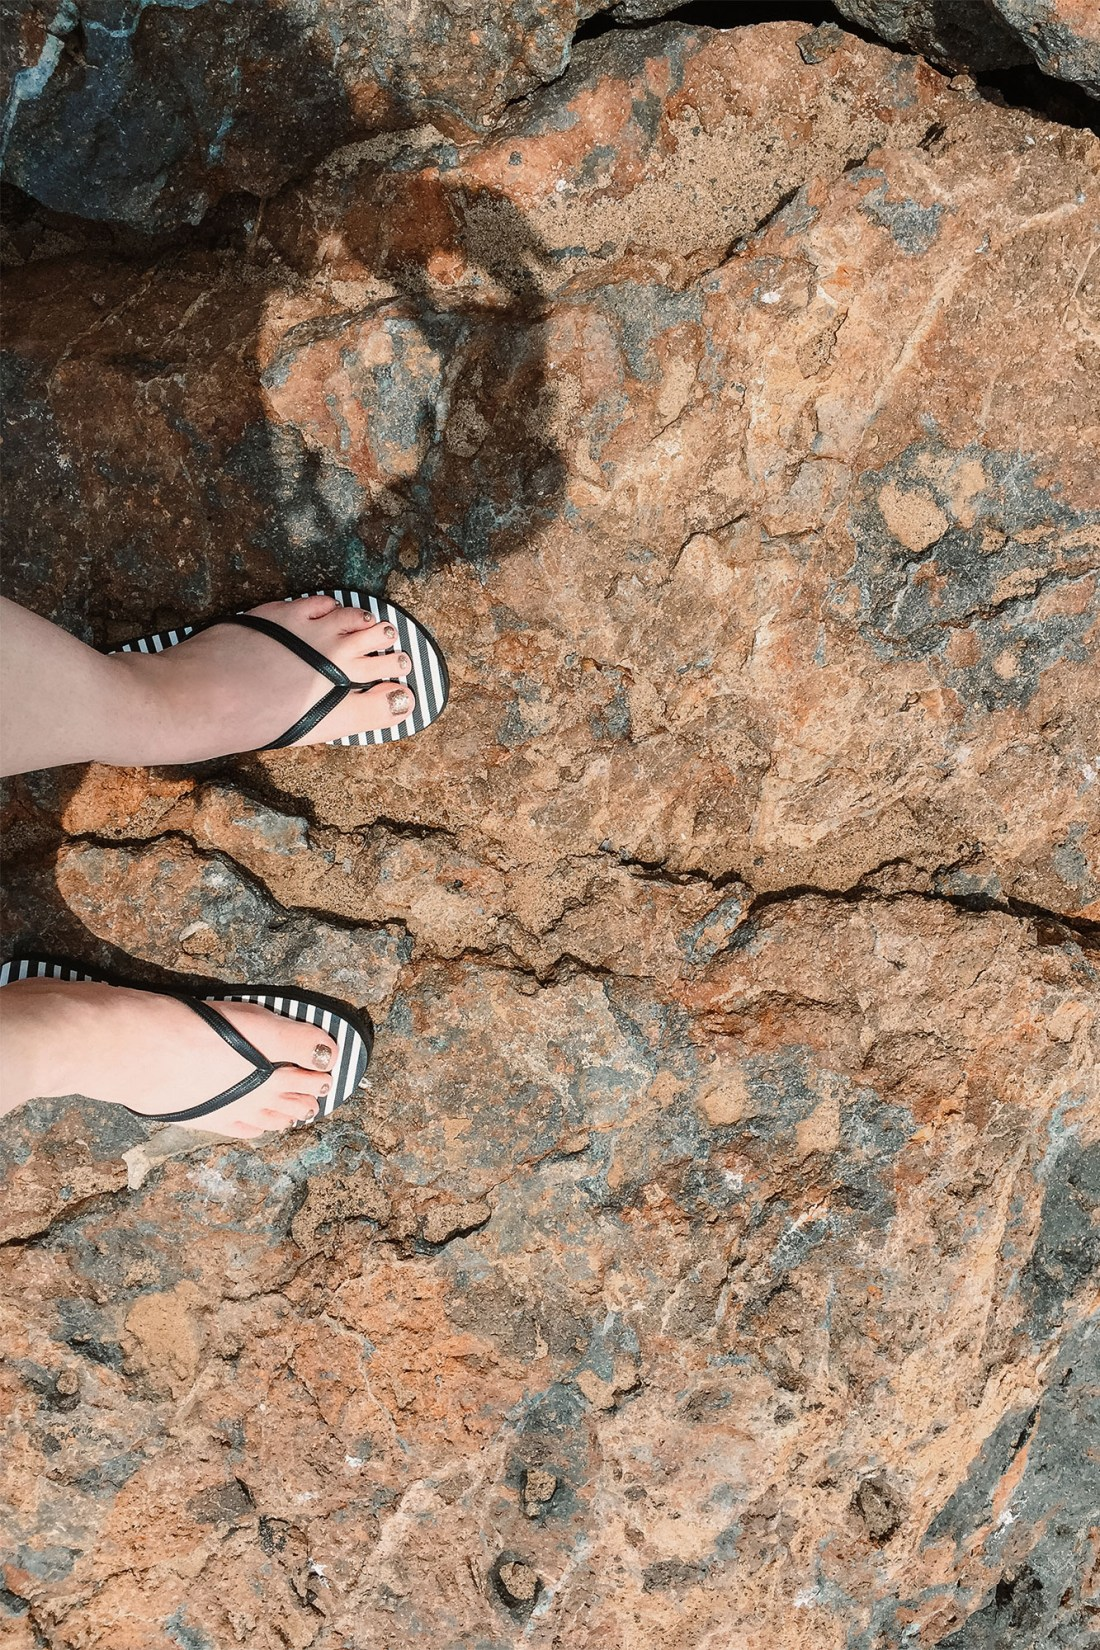 Femail in striped flip flops on rocky surface in Point Dume, Malubu | as seen on the Local Love and Wanderlust Blog